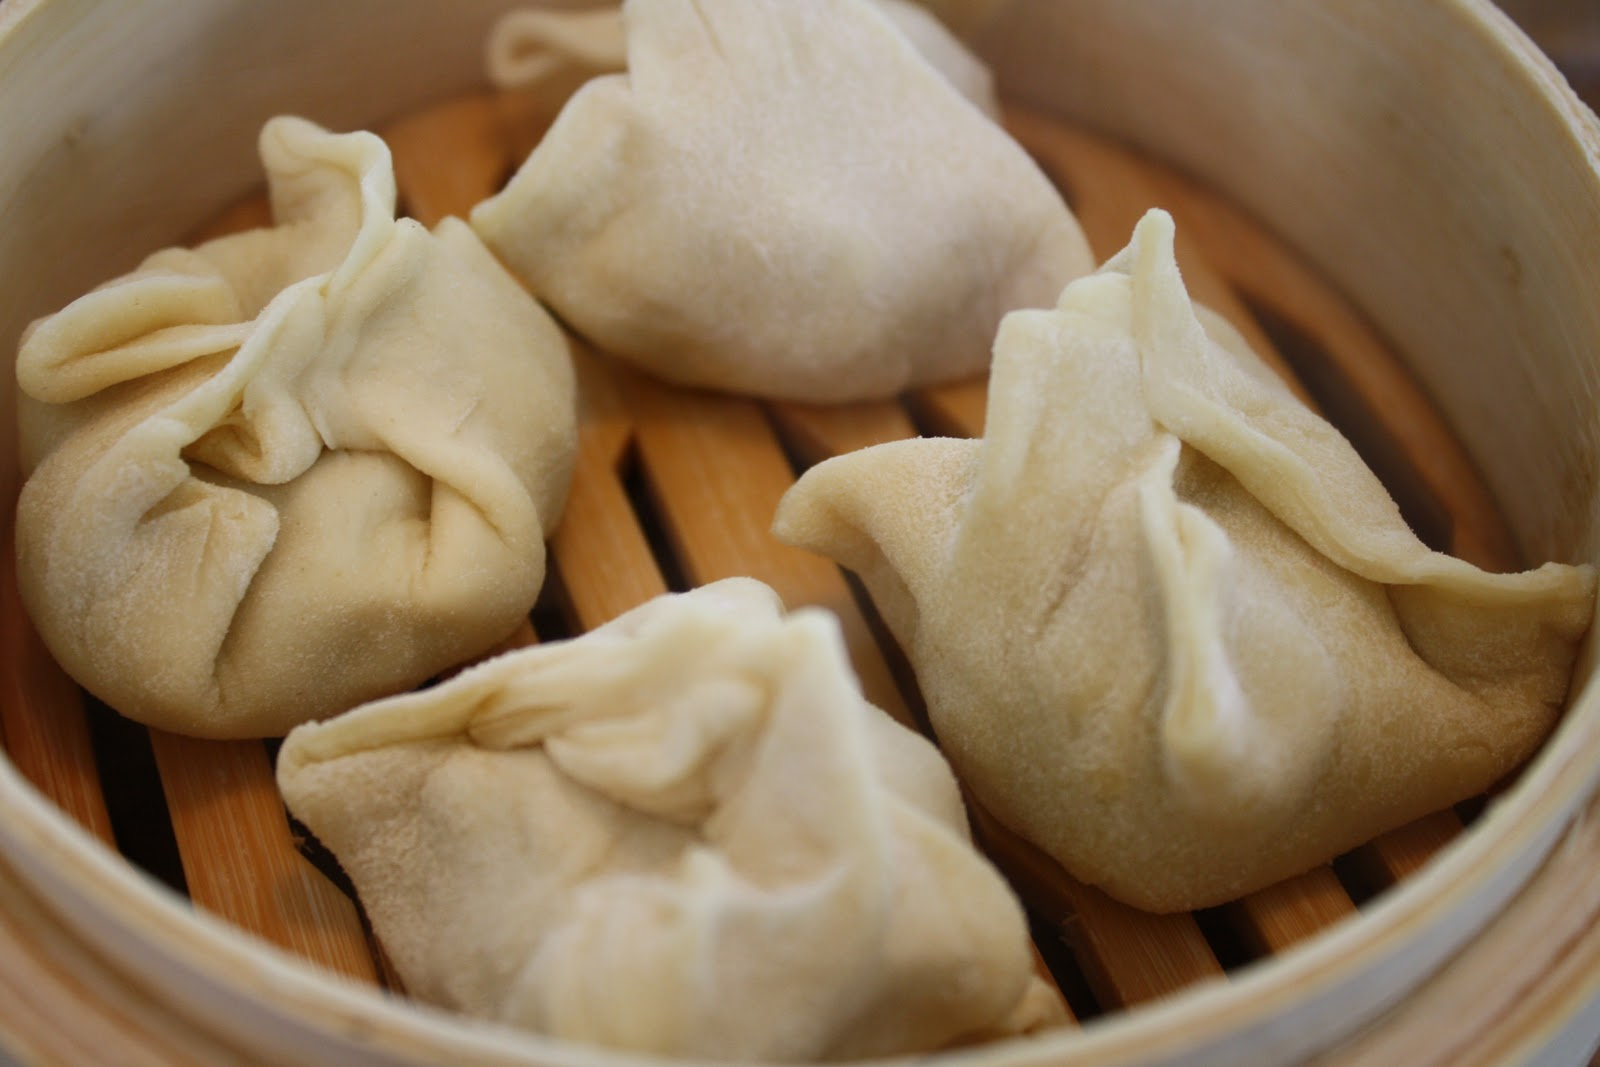 What's Cooking in your World?: Day 90! Kyrgyzstan - Manti (Meat Dumplings)  for Lunch - Up Next, Laos